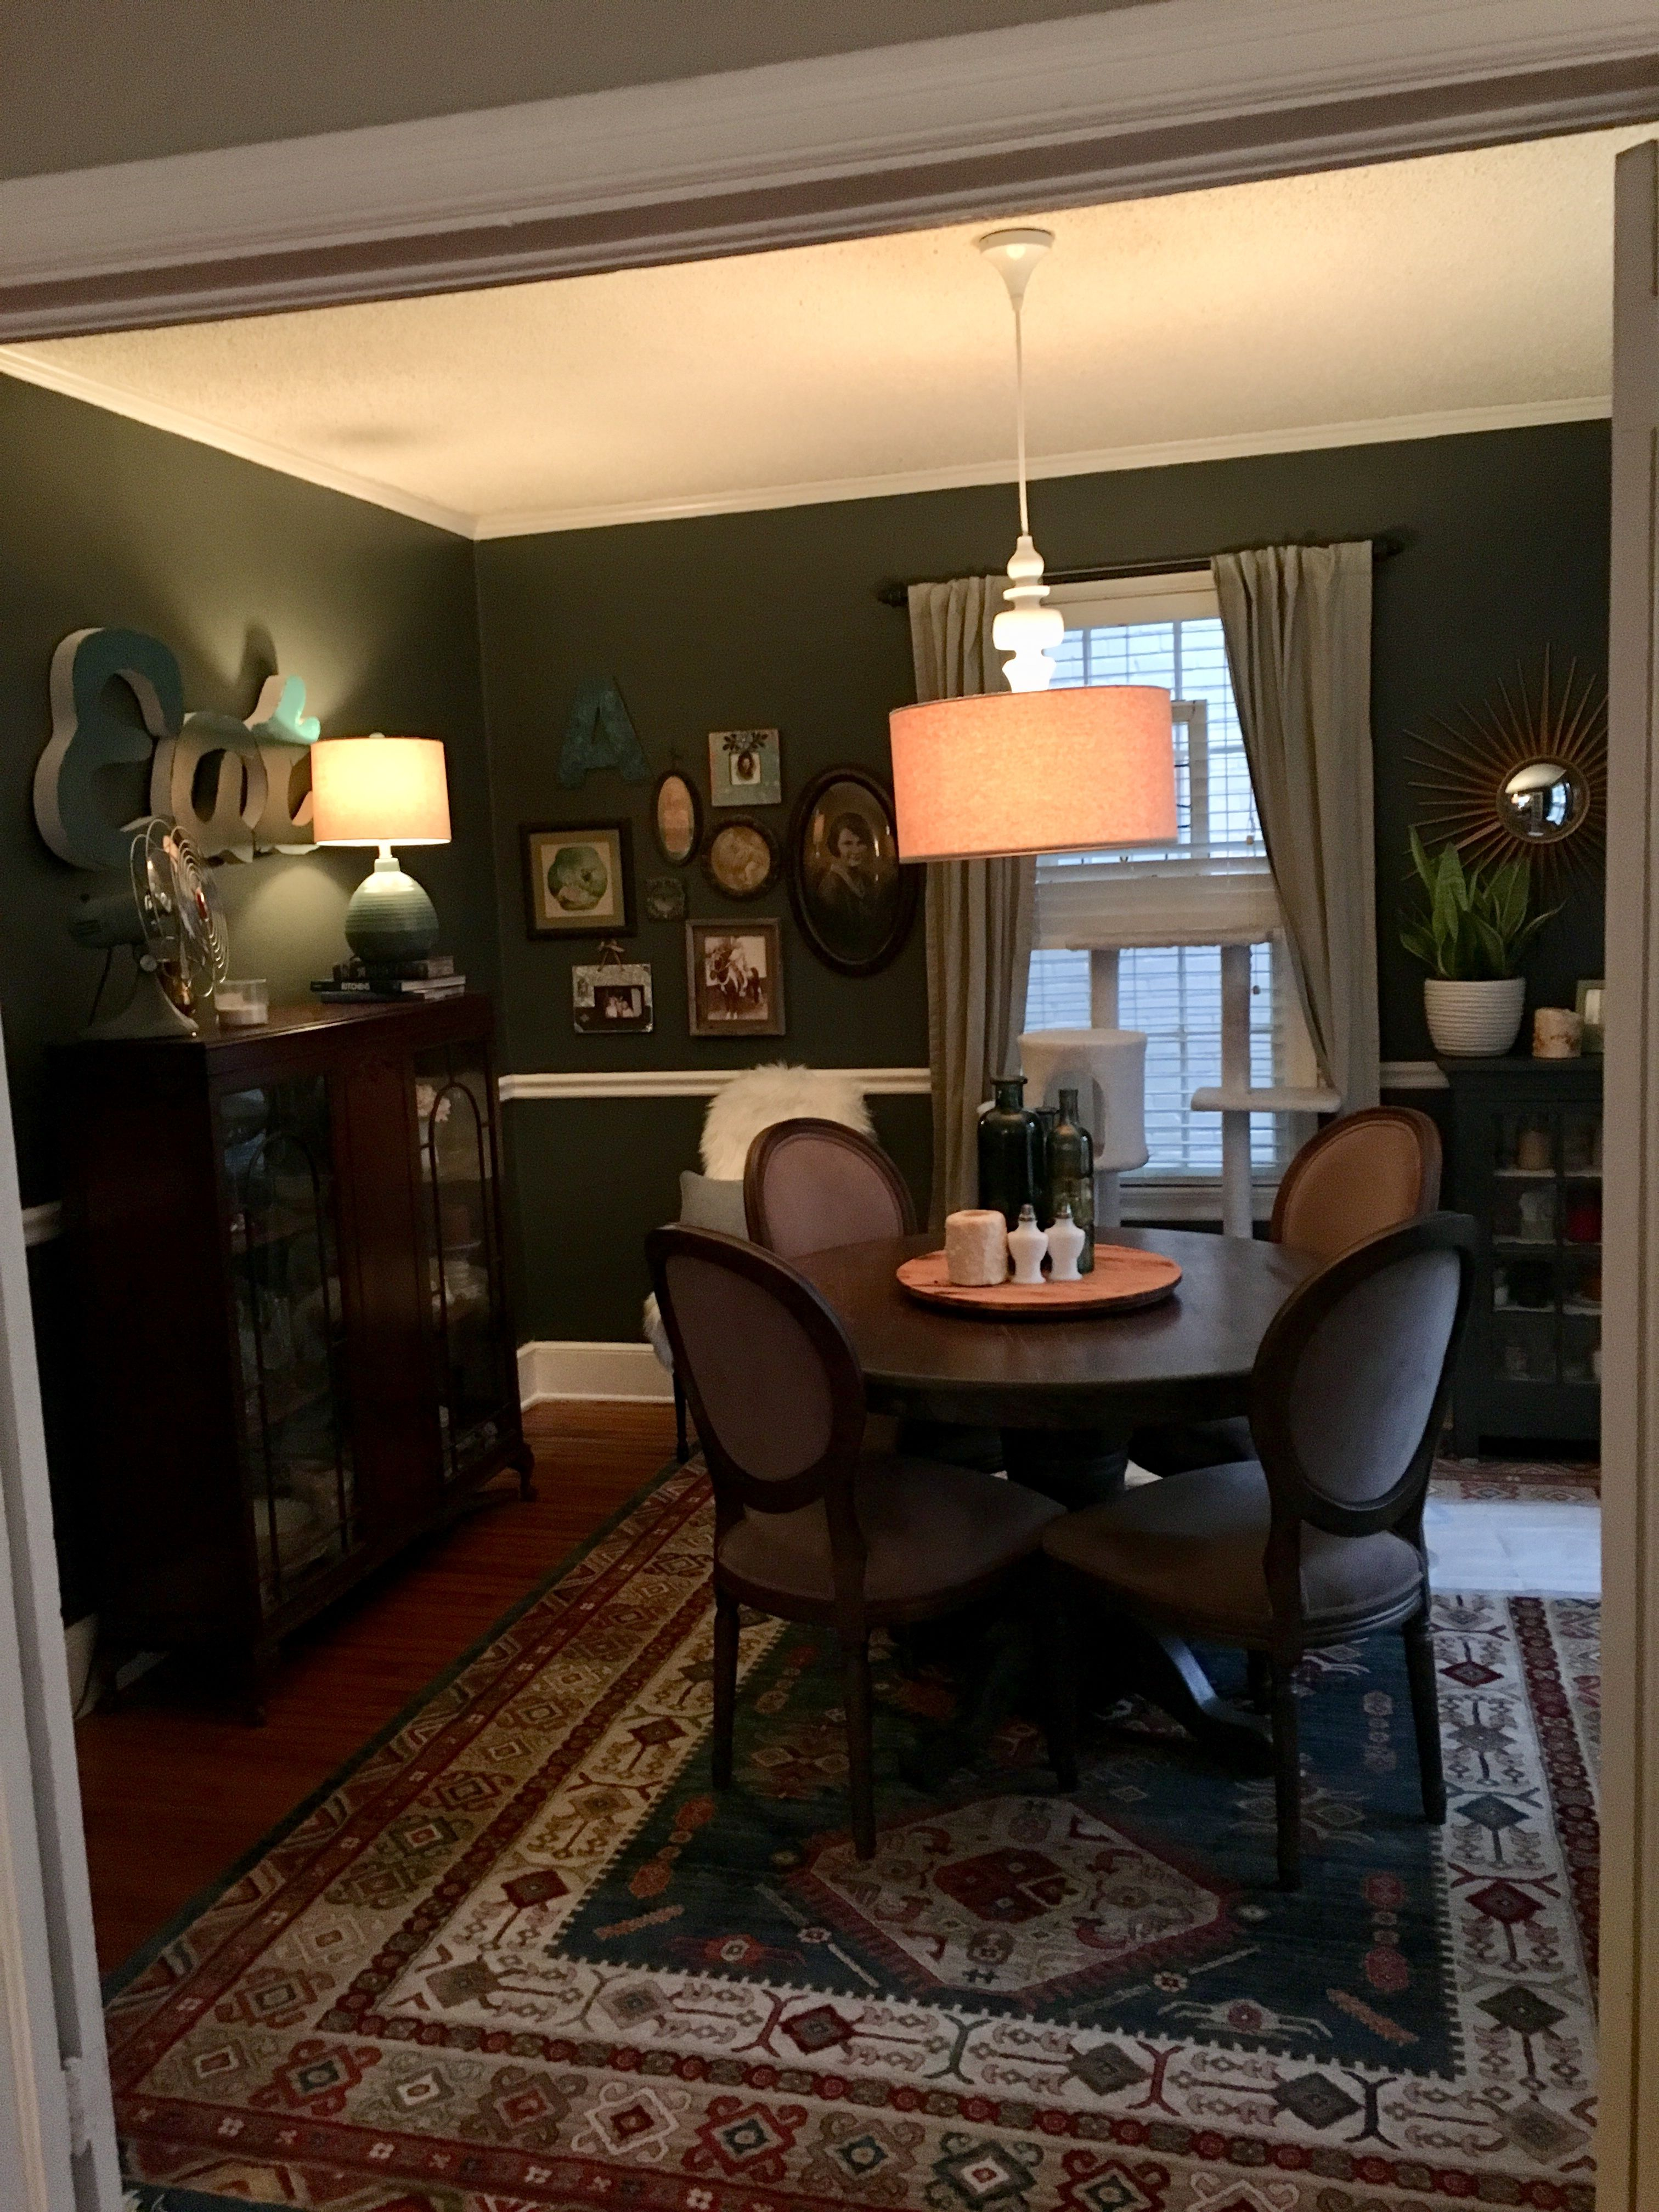 New dining room Sable evening valspar Pillow to right west elm